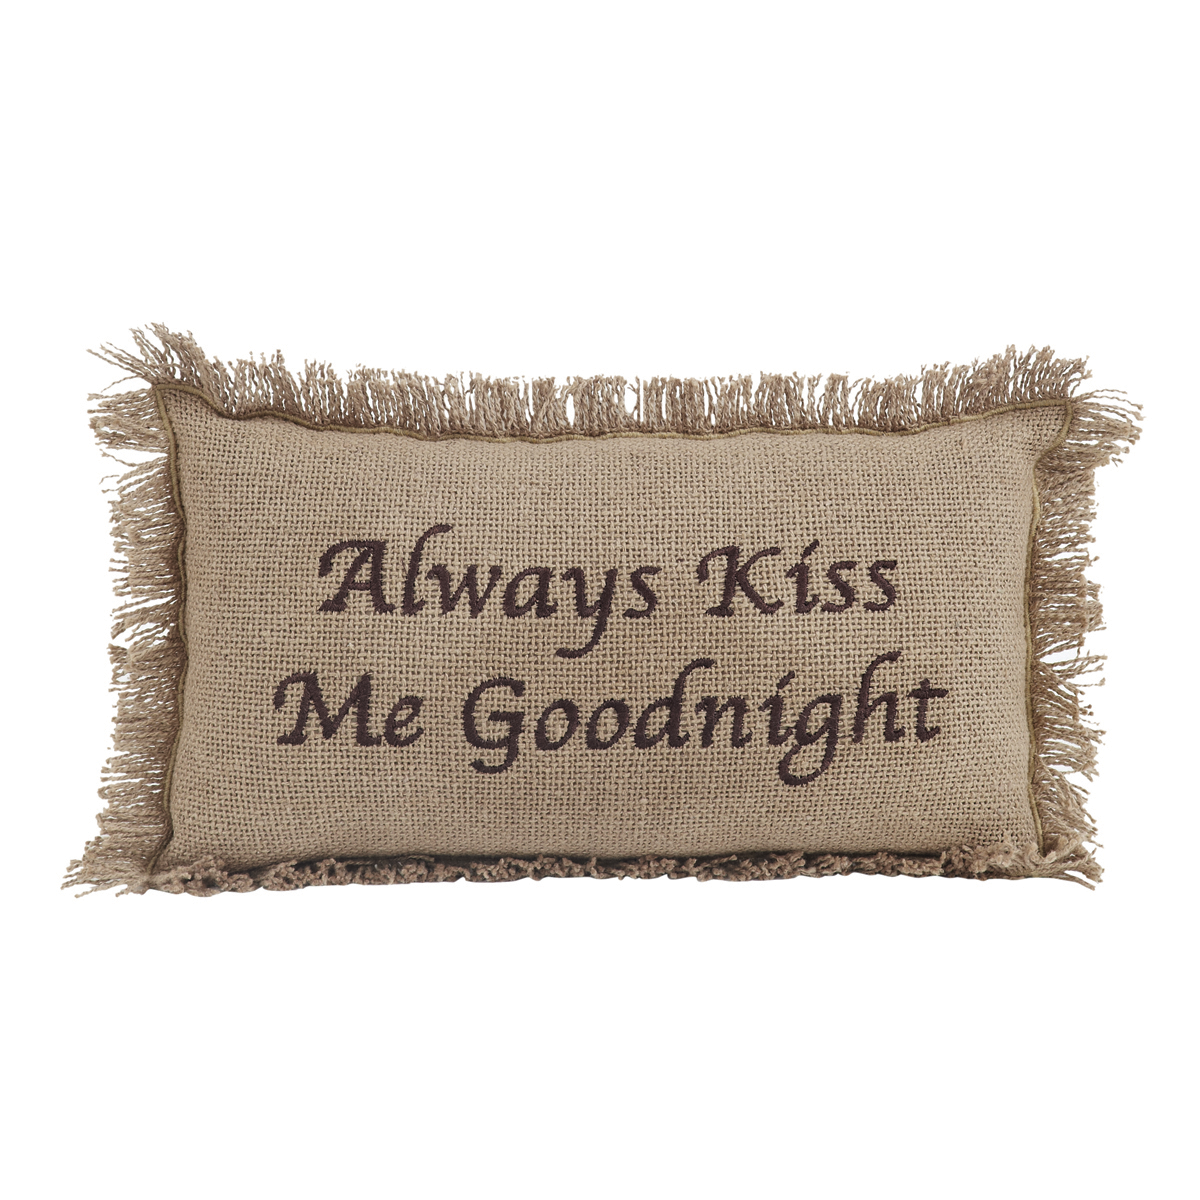 BURLAP NATURAL Pillow - Kiss Goodnight - 7x13 - VHC Brands - Country Farmhouse